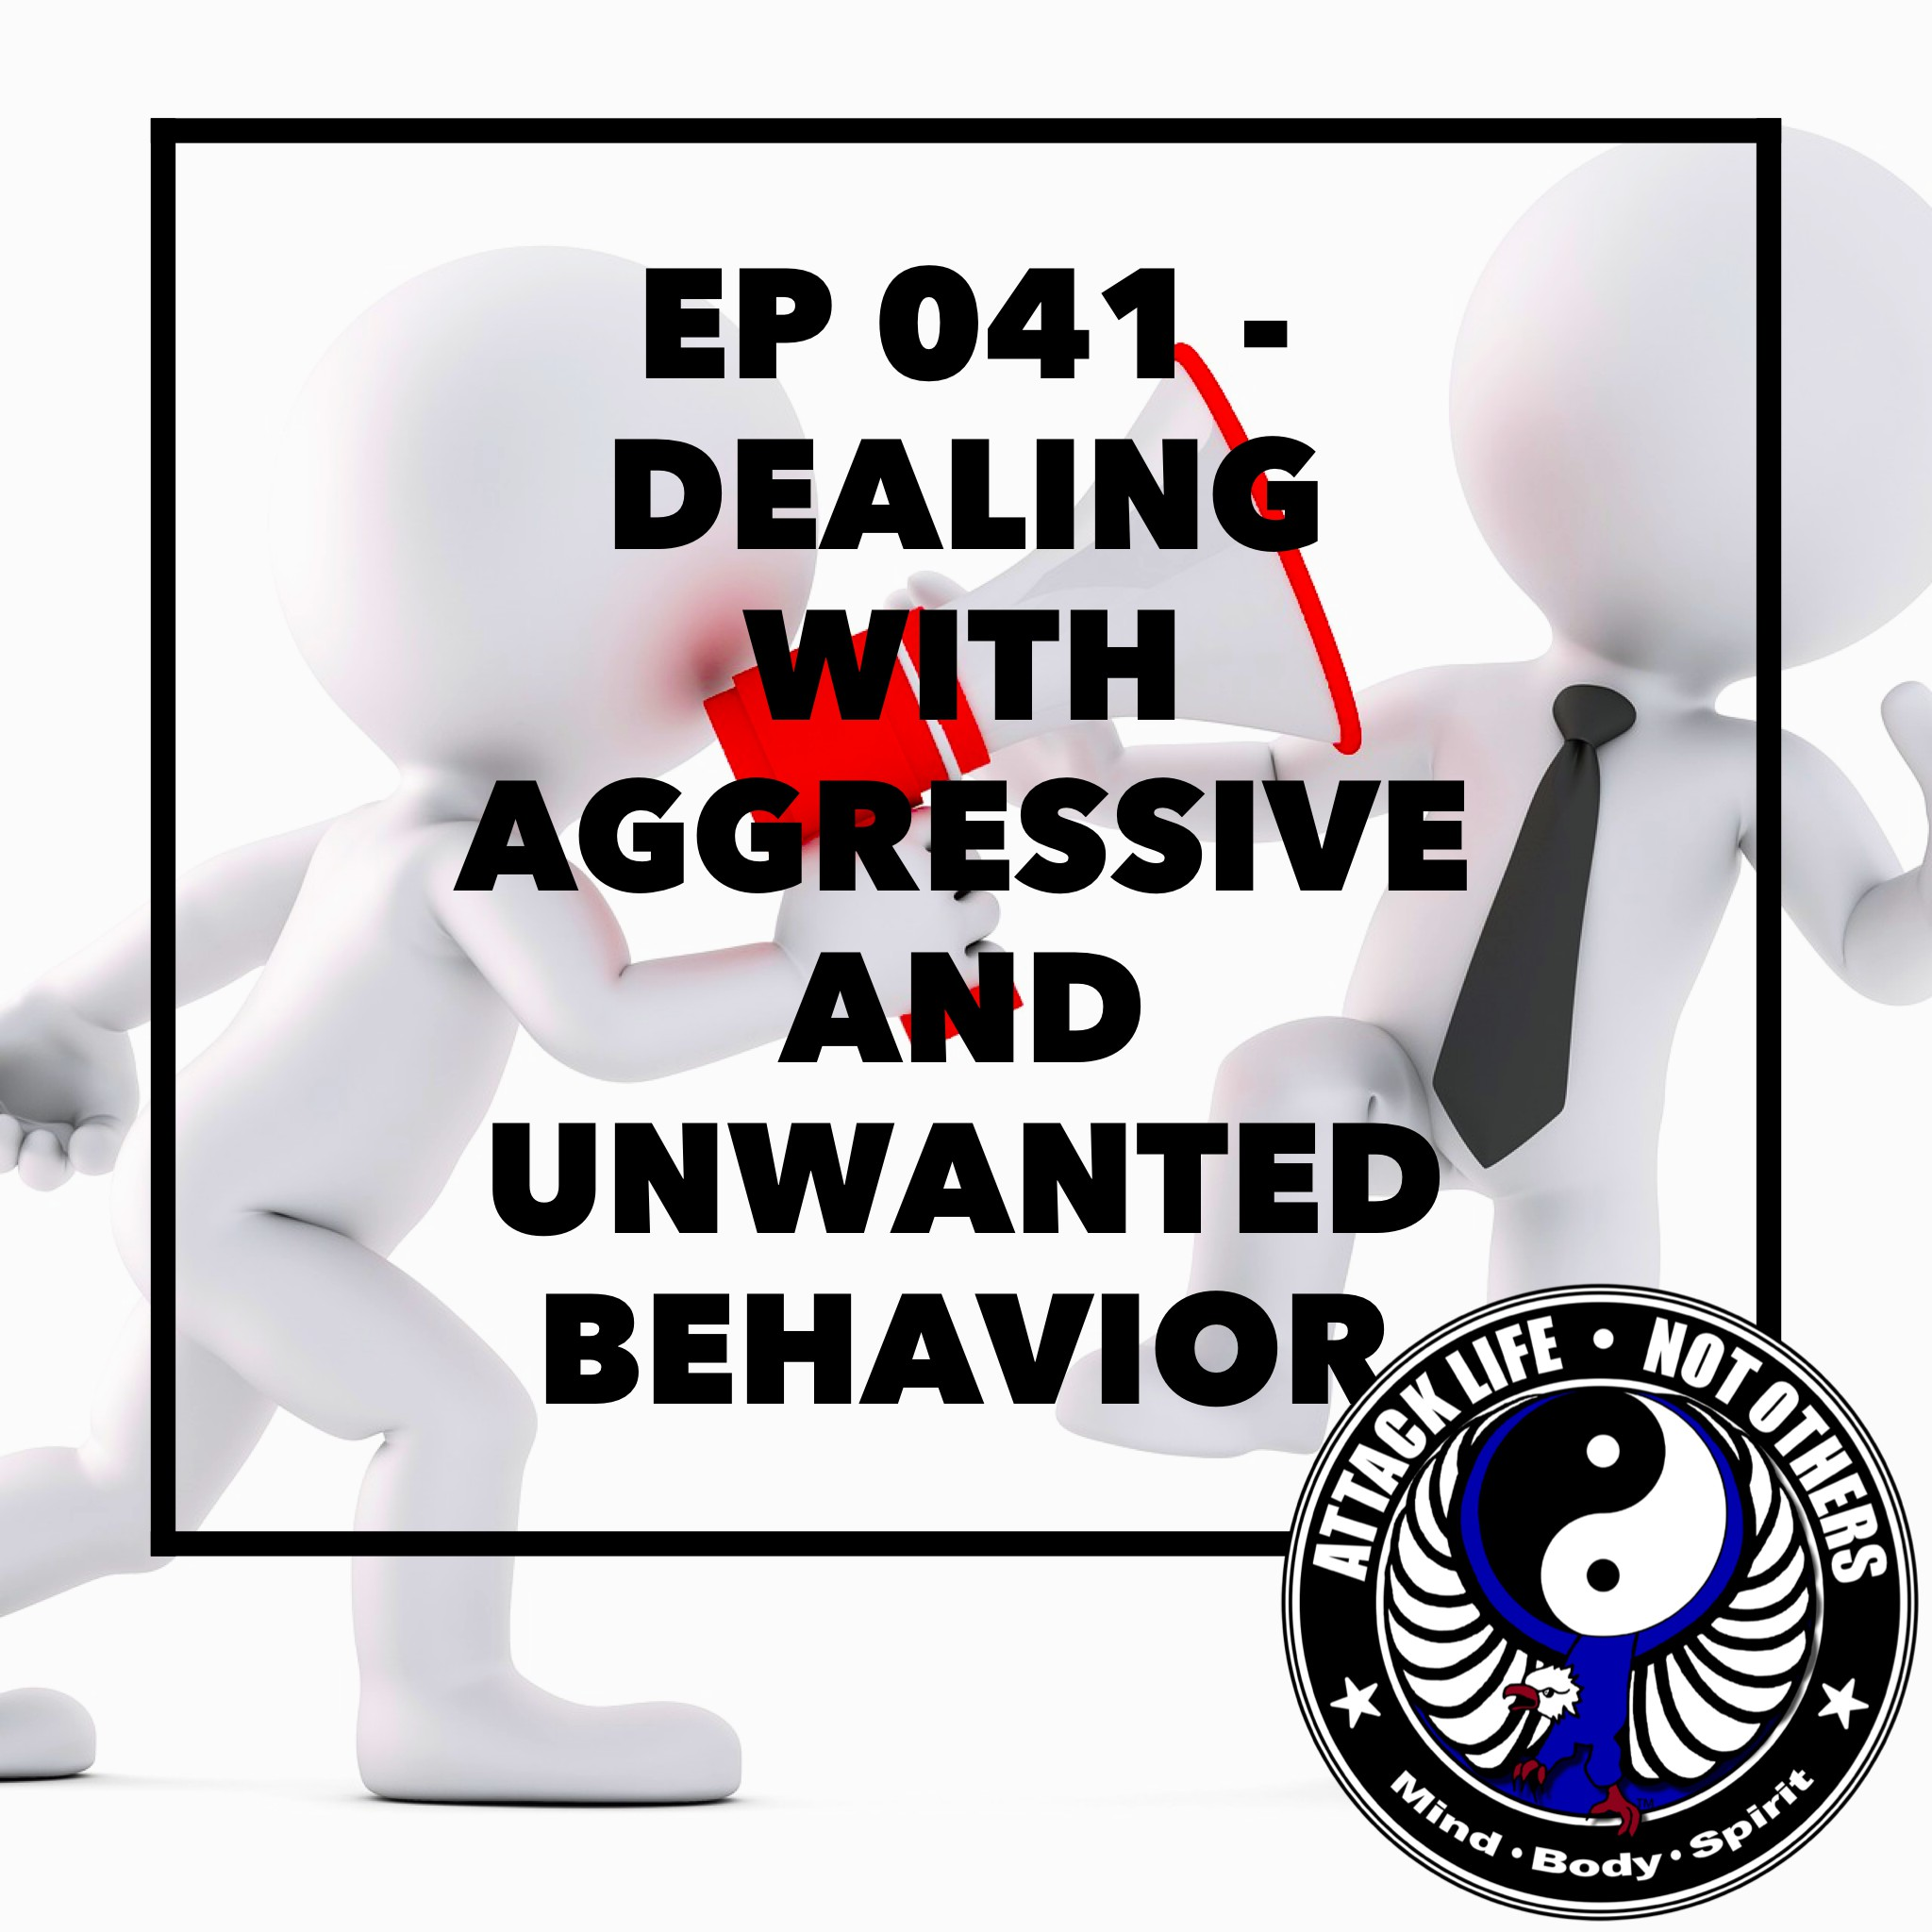 Artwork for Ep 041 - Dealing with Aggressive and Unwanted Behavior